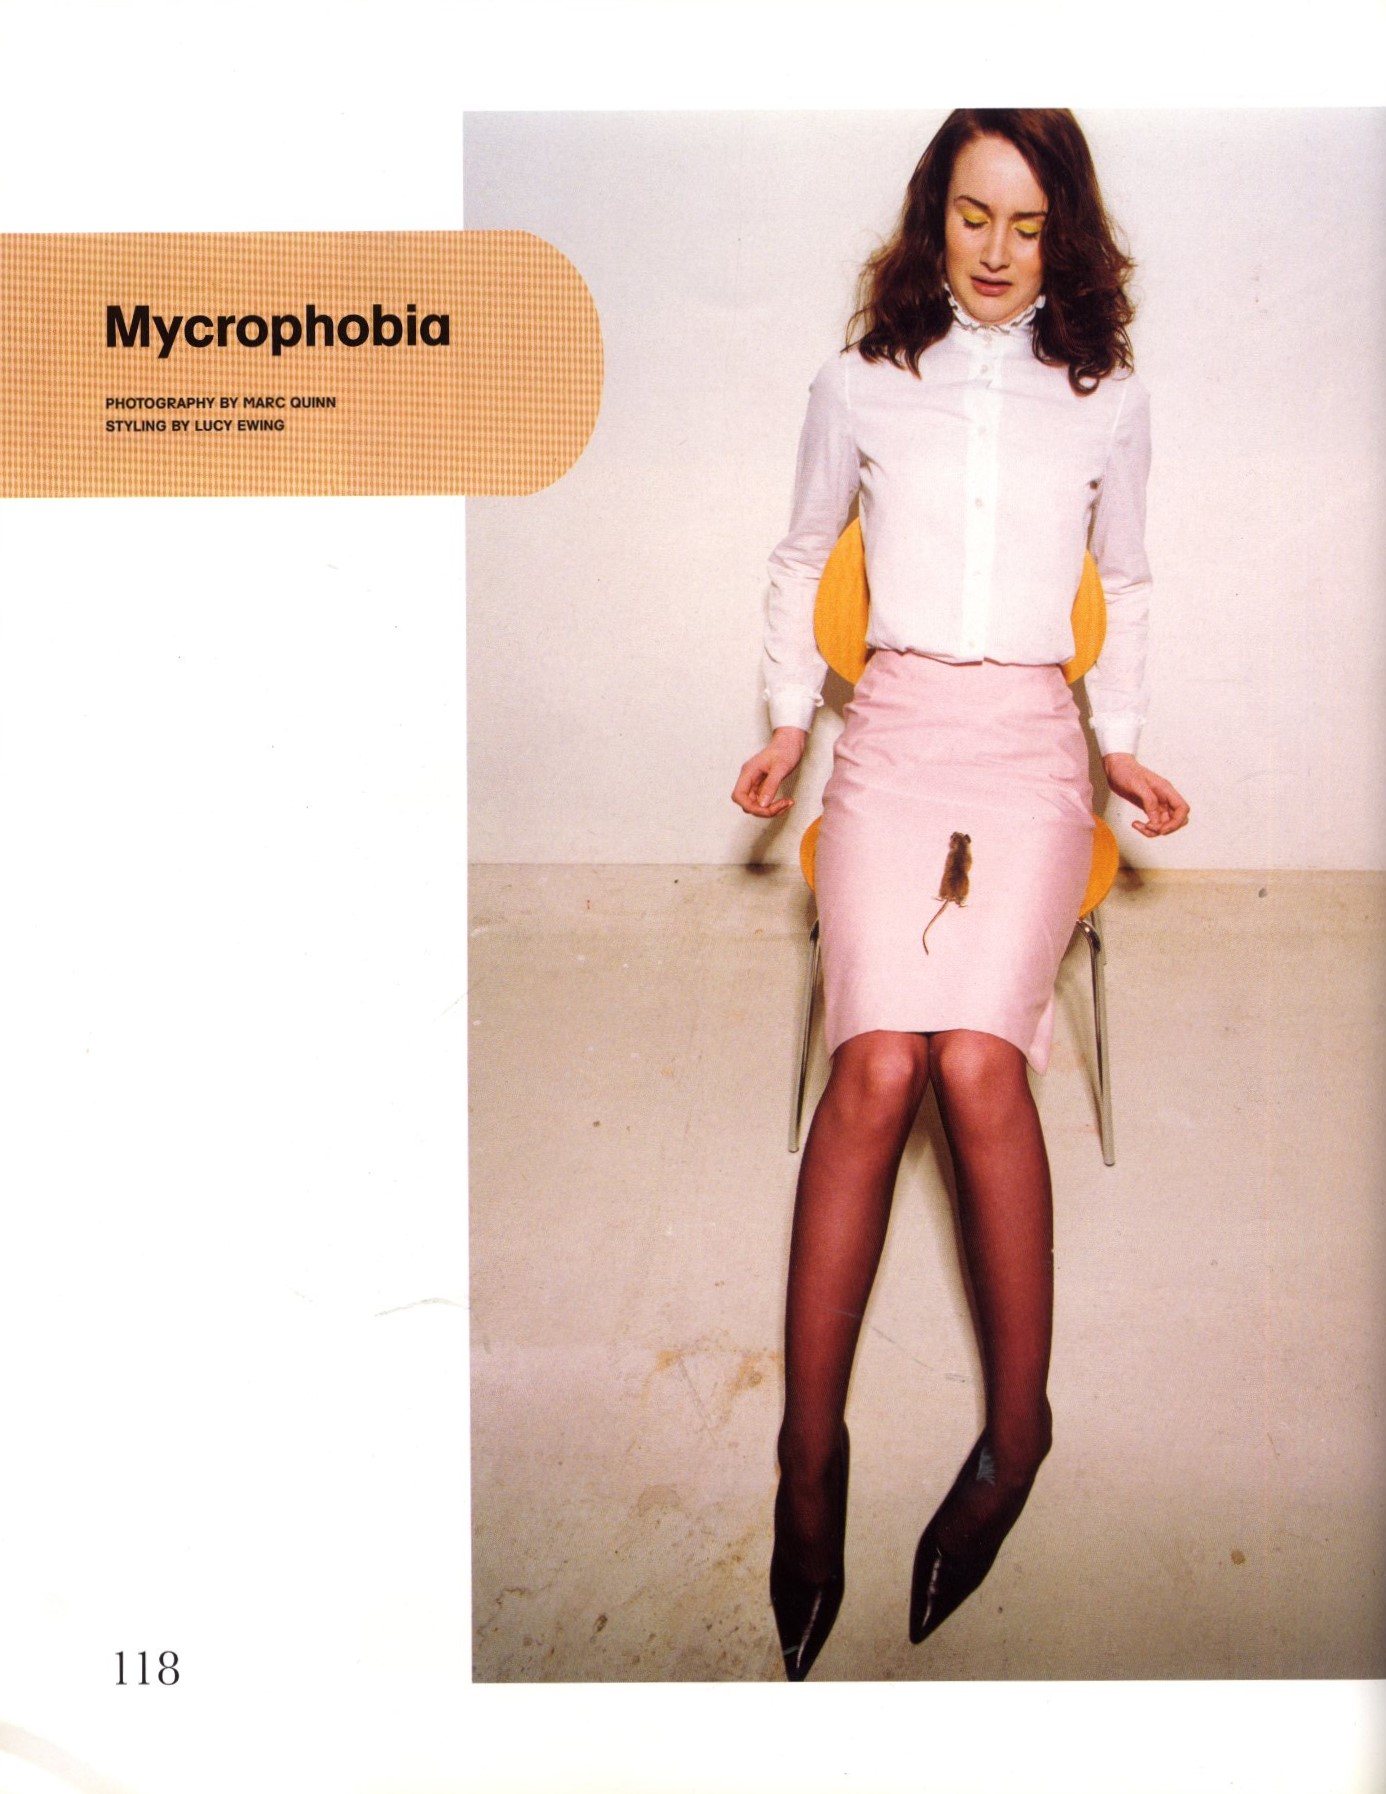 mycrophobia photography marc quinn styling lucy ewing big horror issue 28 1